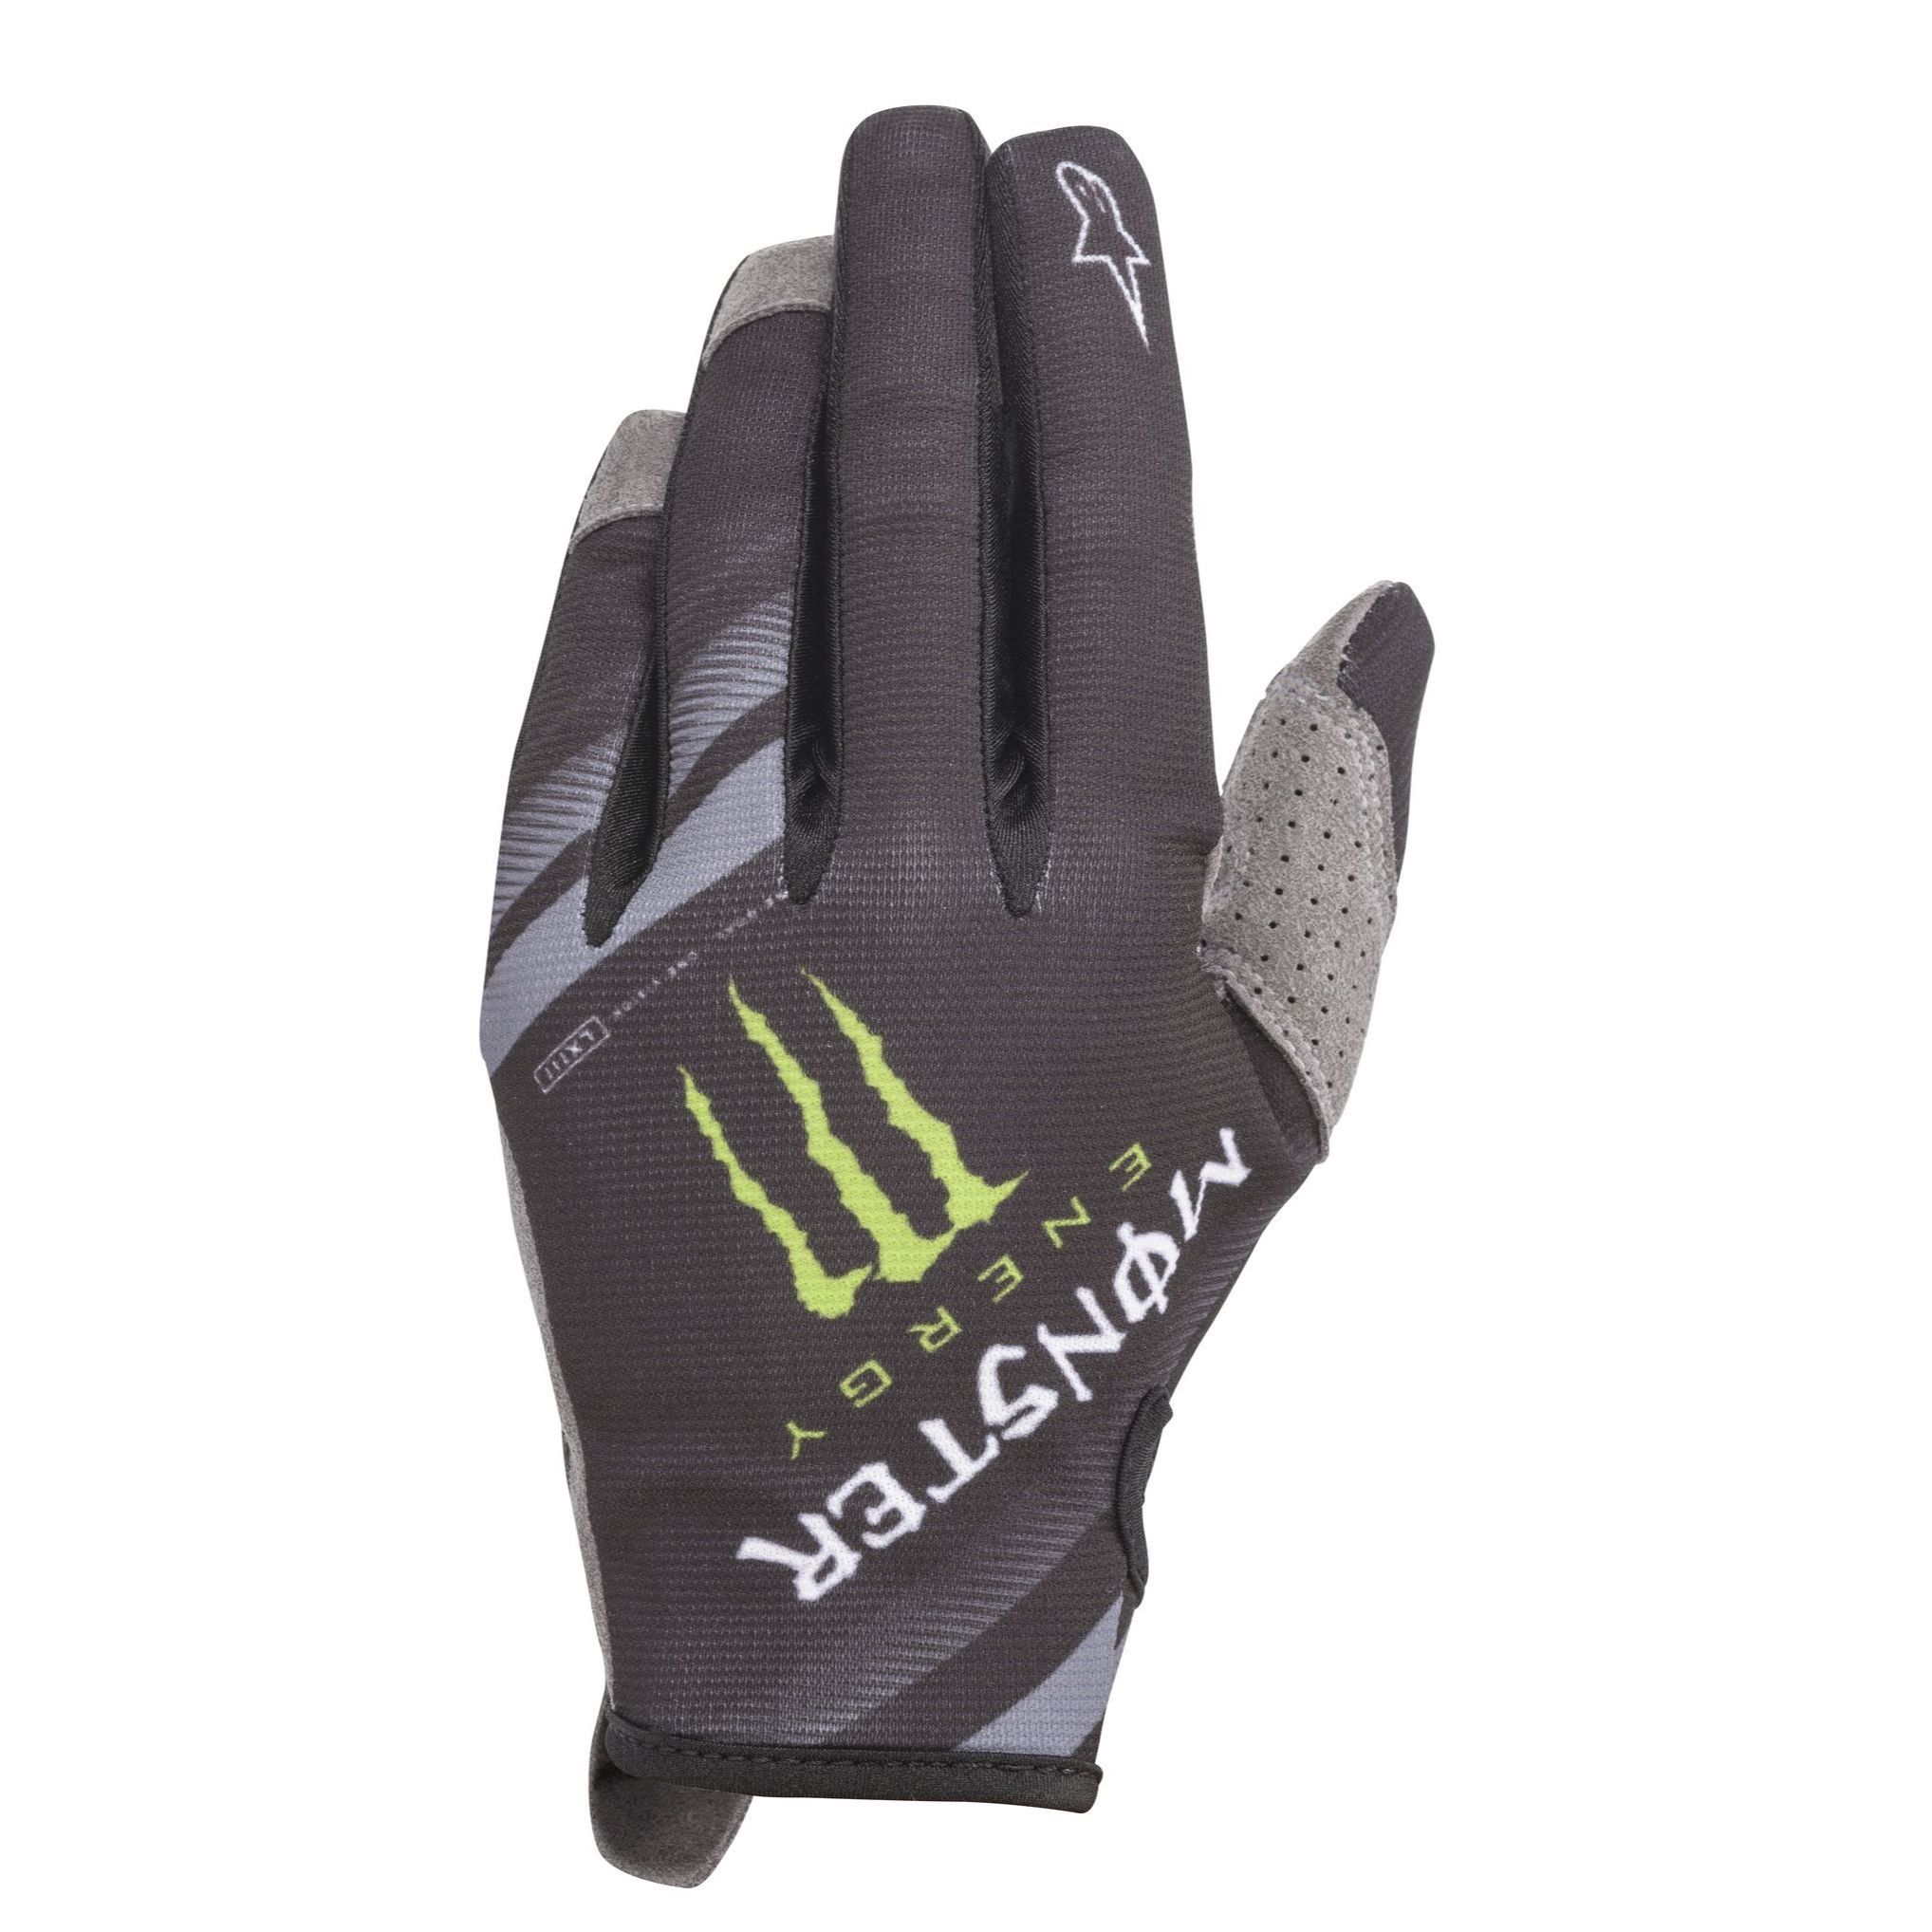 Guantes de motocross ALPINESTARS MONSTER RACER GEAR - MONSTER - BLACK BRIGHT GREEN RED 2020